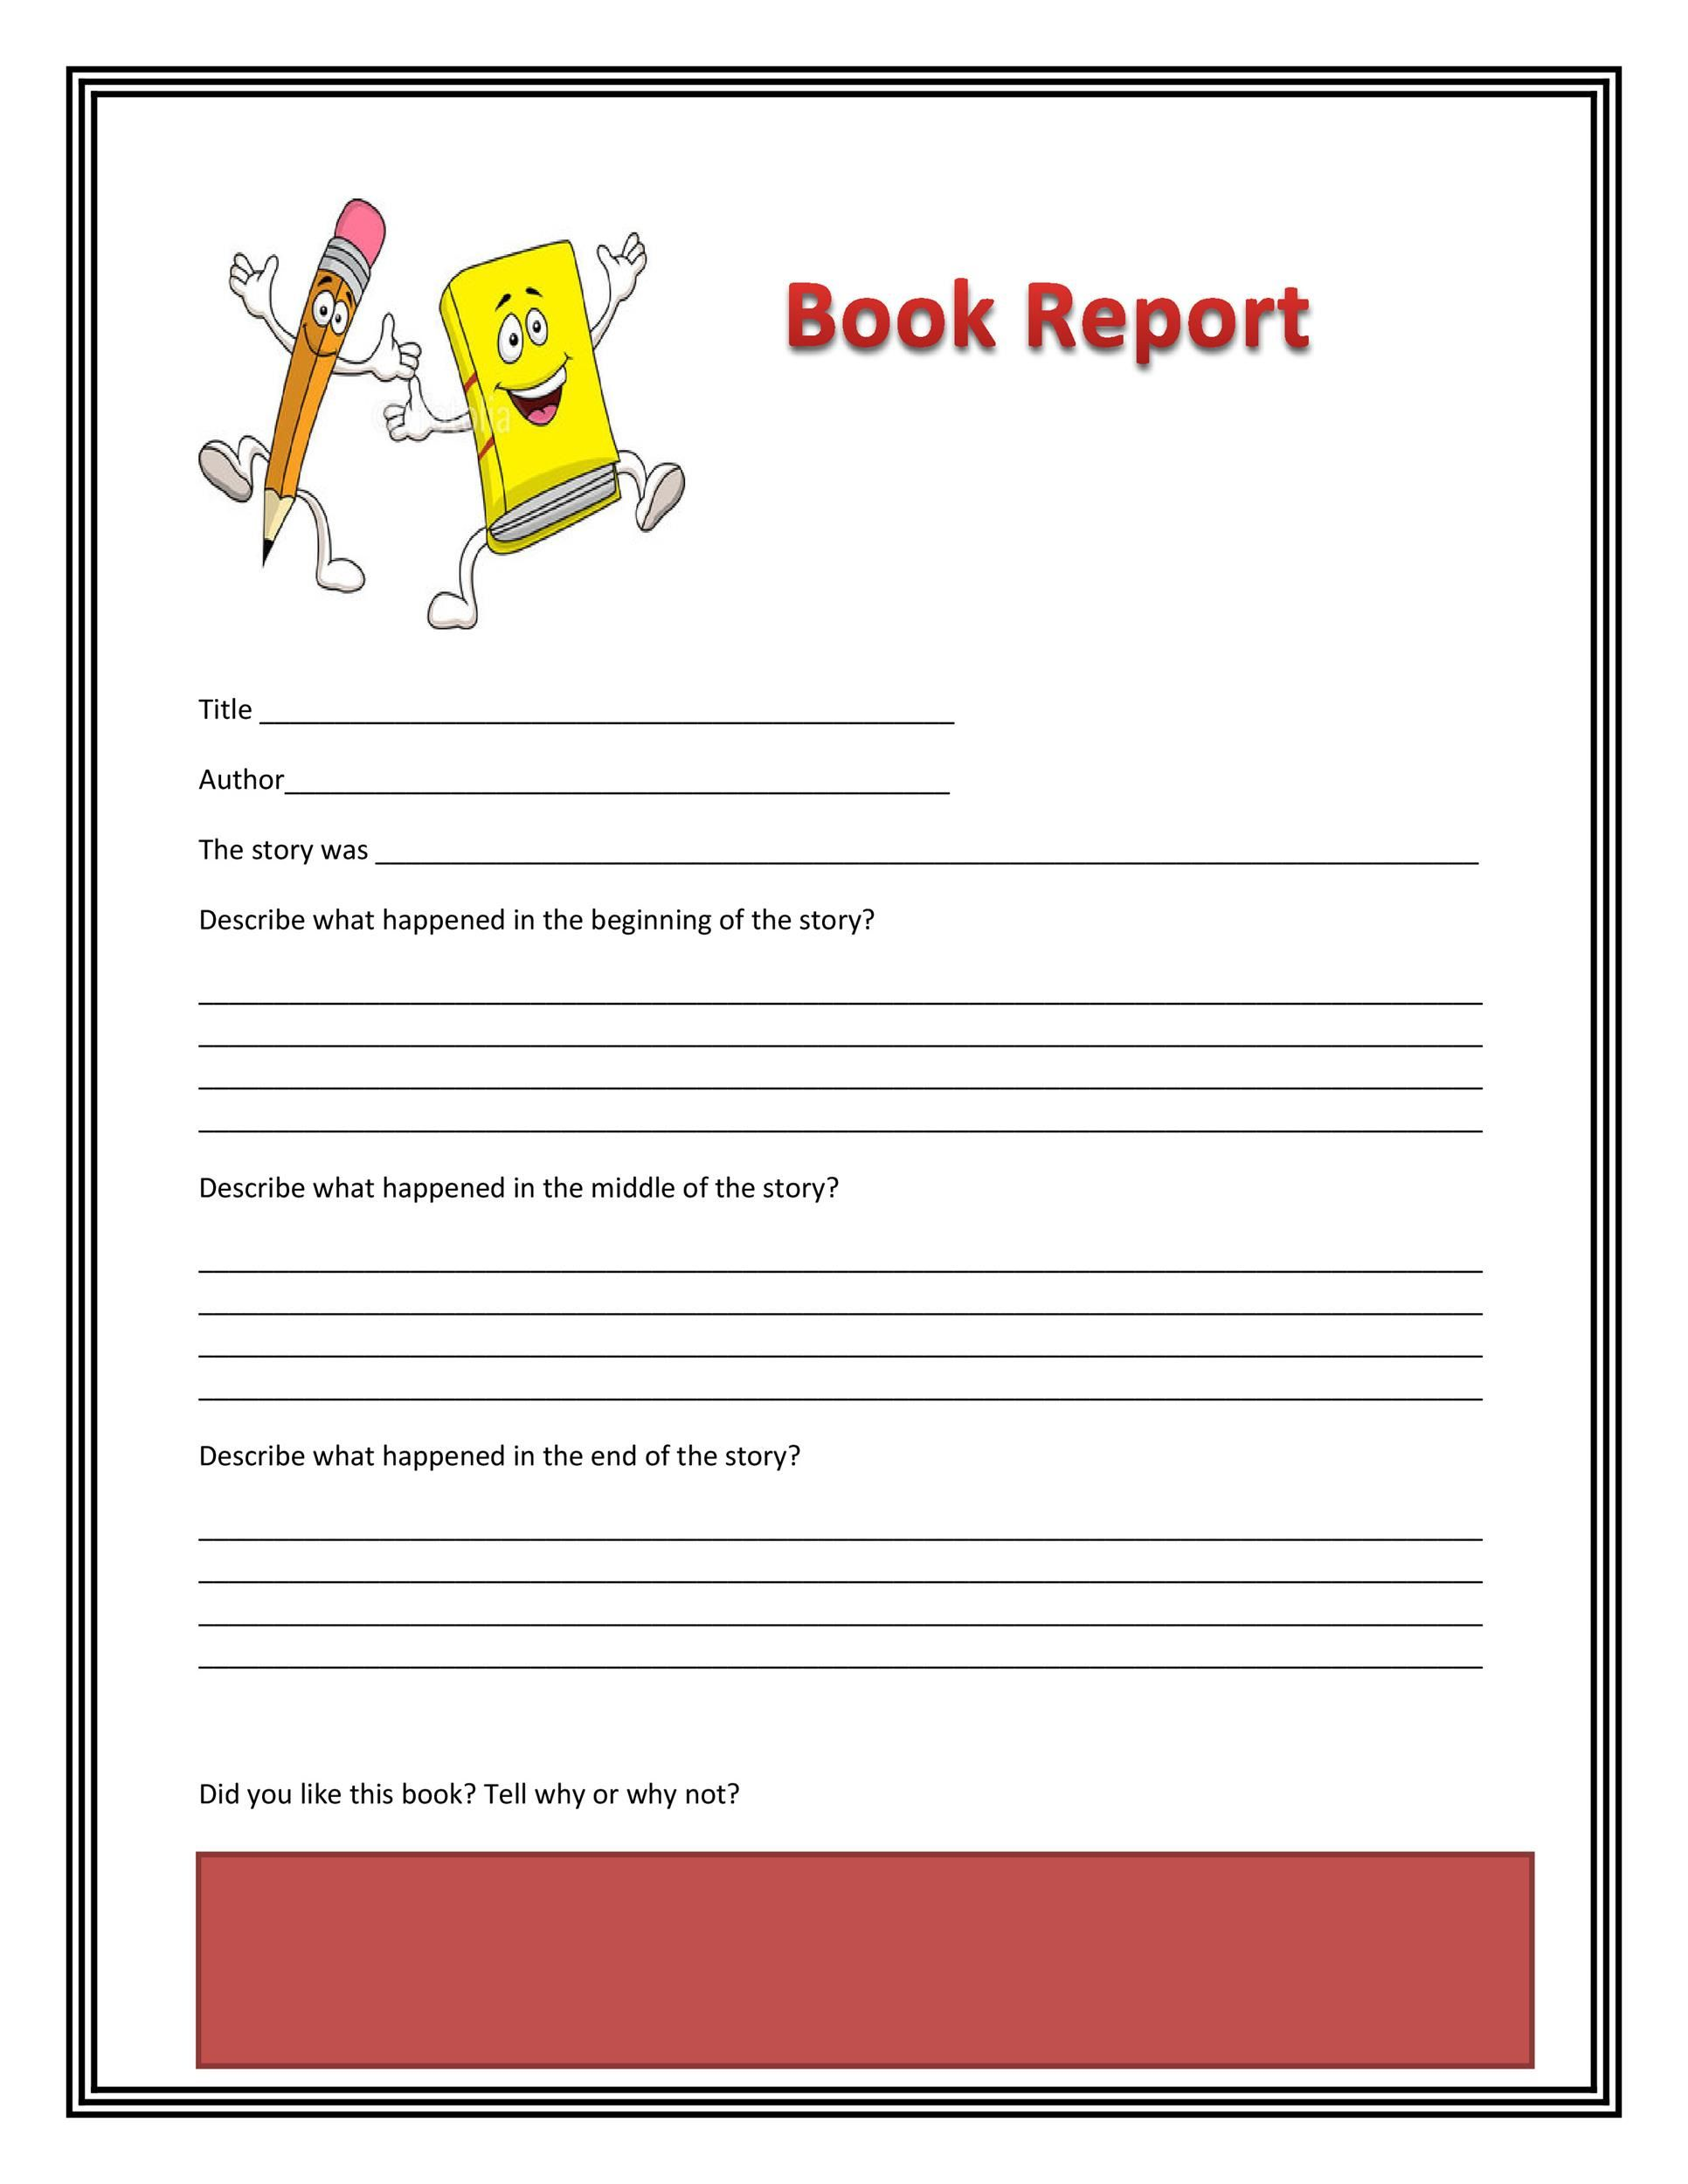 003 Stunning Free Printable Book Report Template For 6th Grade Photo Full